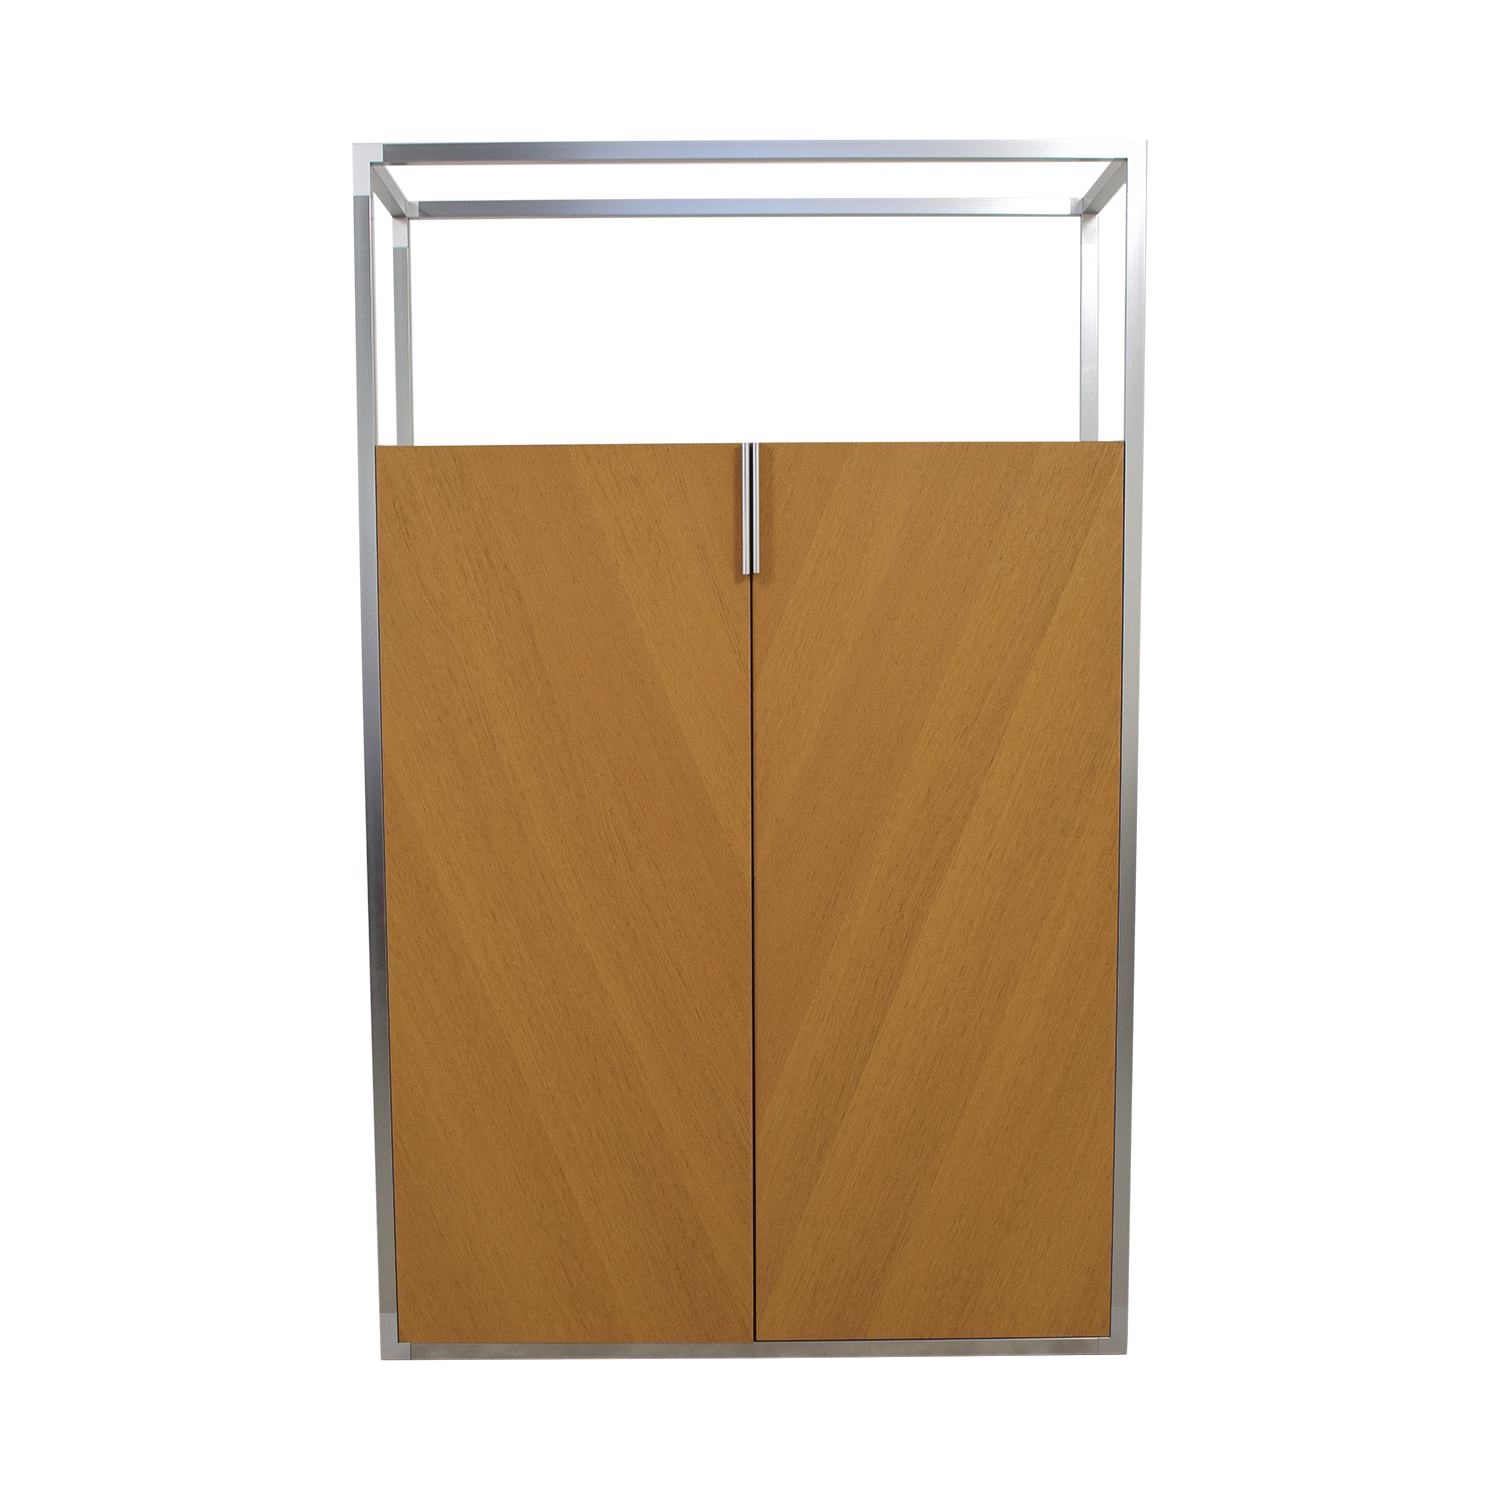 shop Ligne Roset Ligne Roset Wooden Wardrobe with Metal Top Frame online